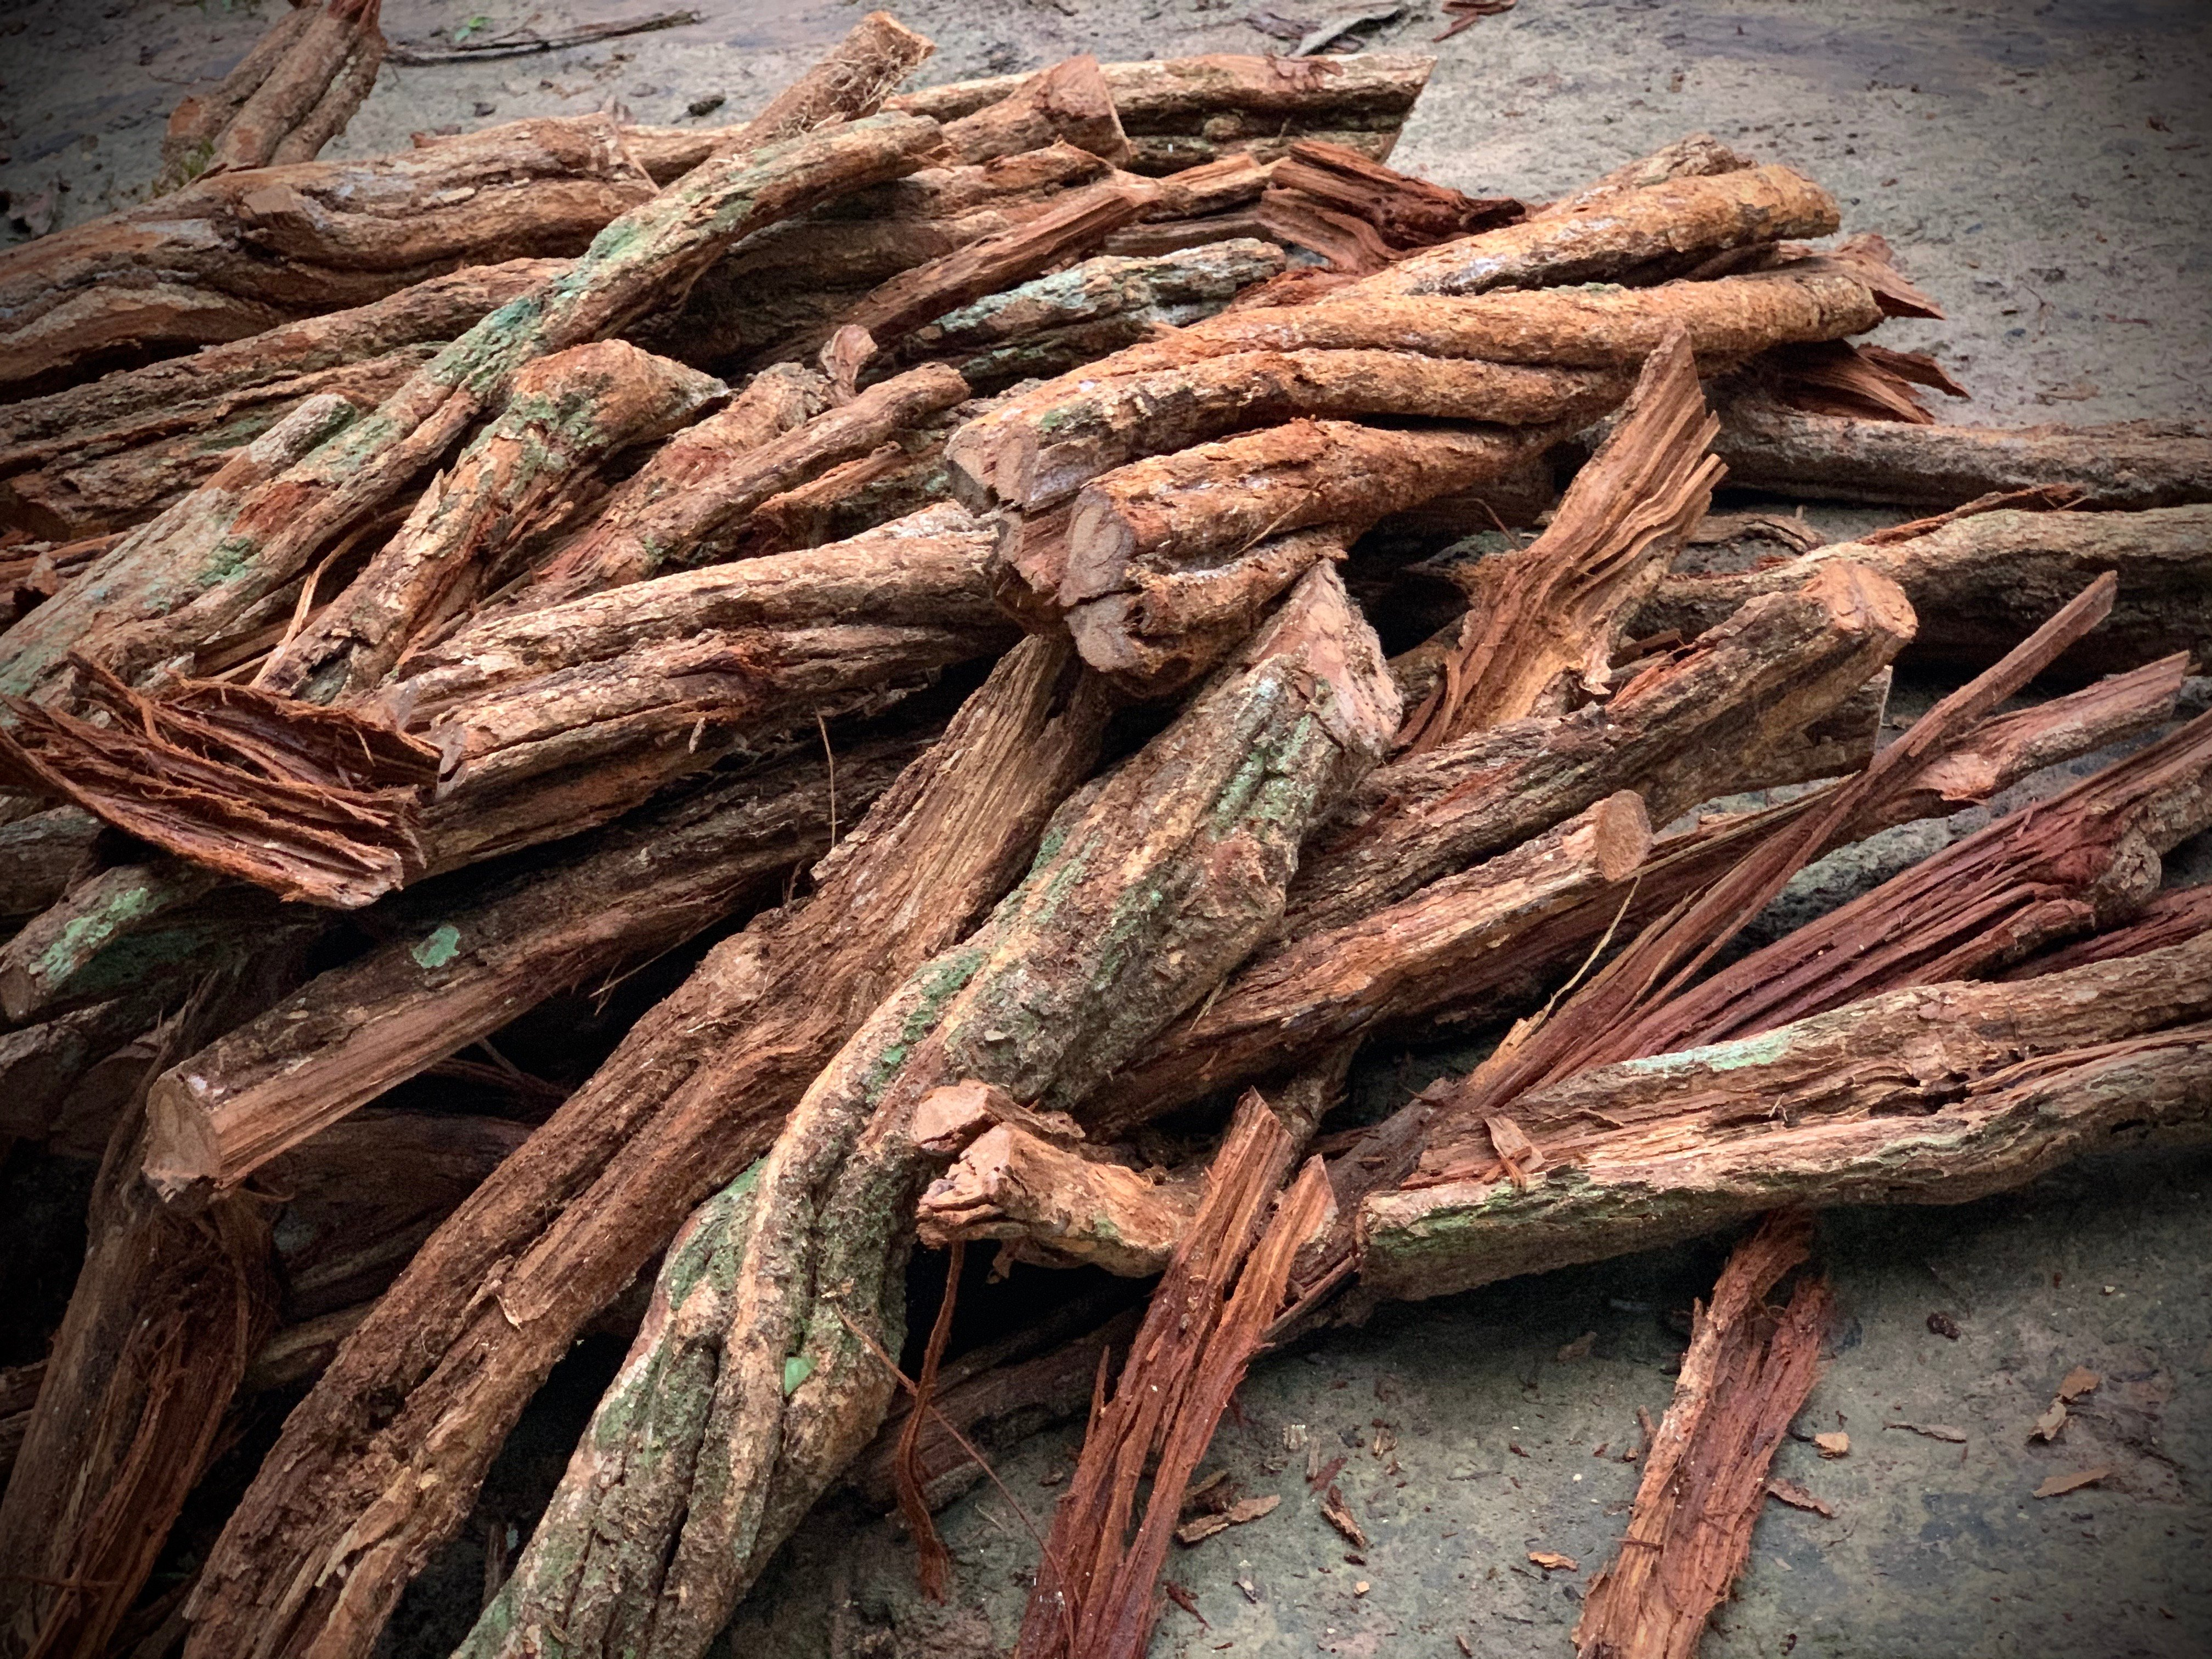 Mental Health And Quality Of Life After A First Ayahuasca Experience